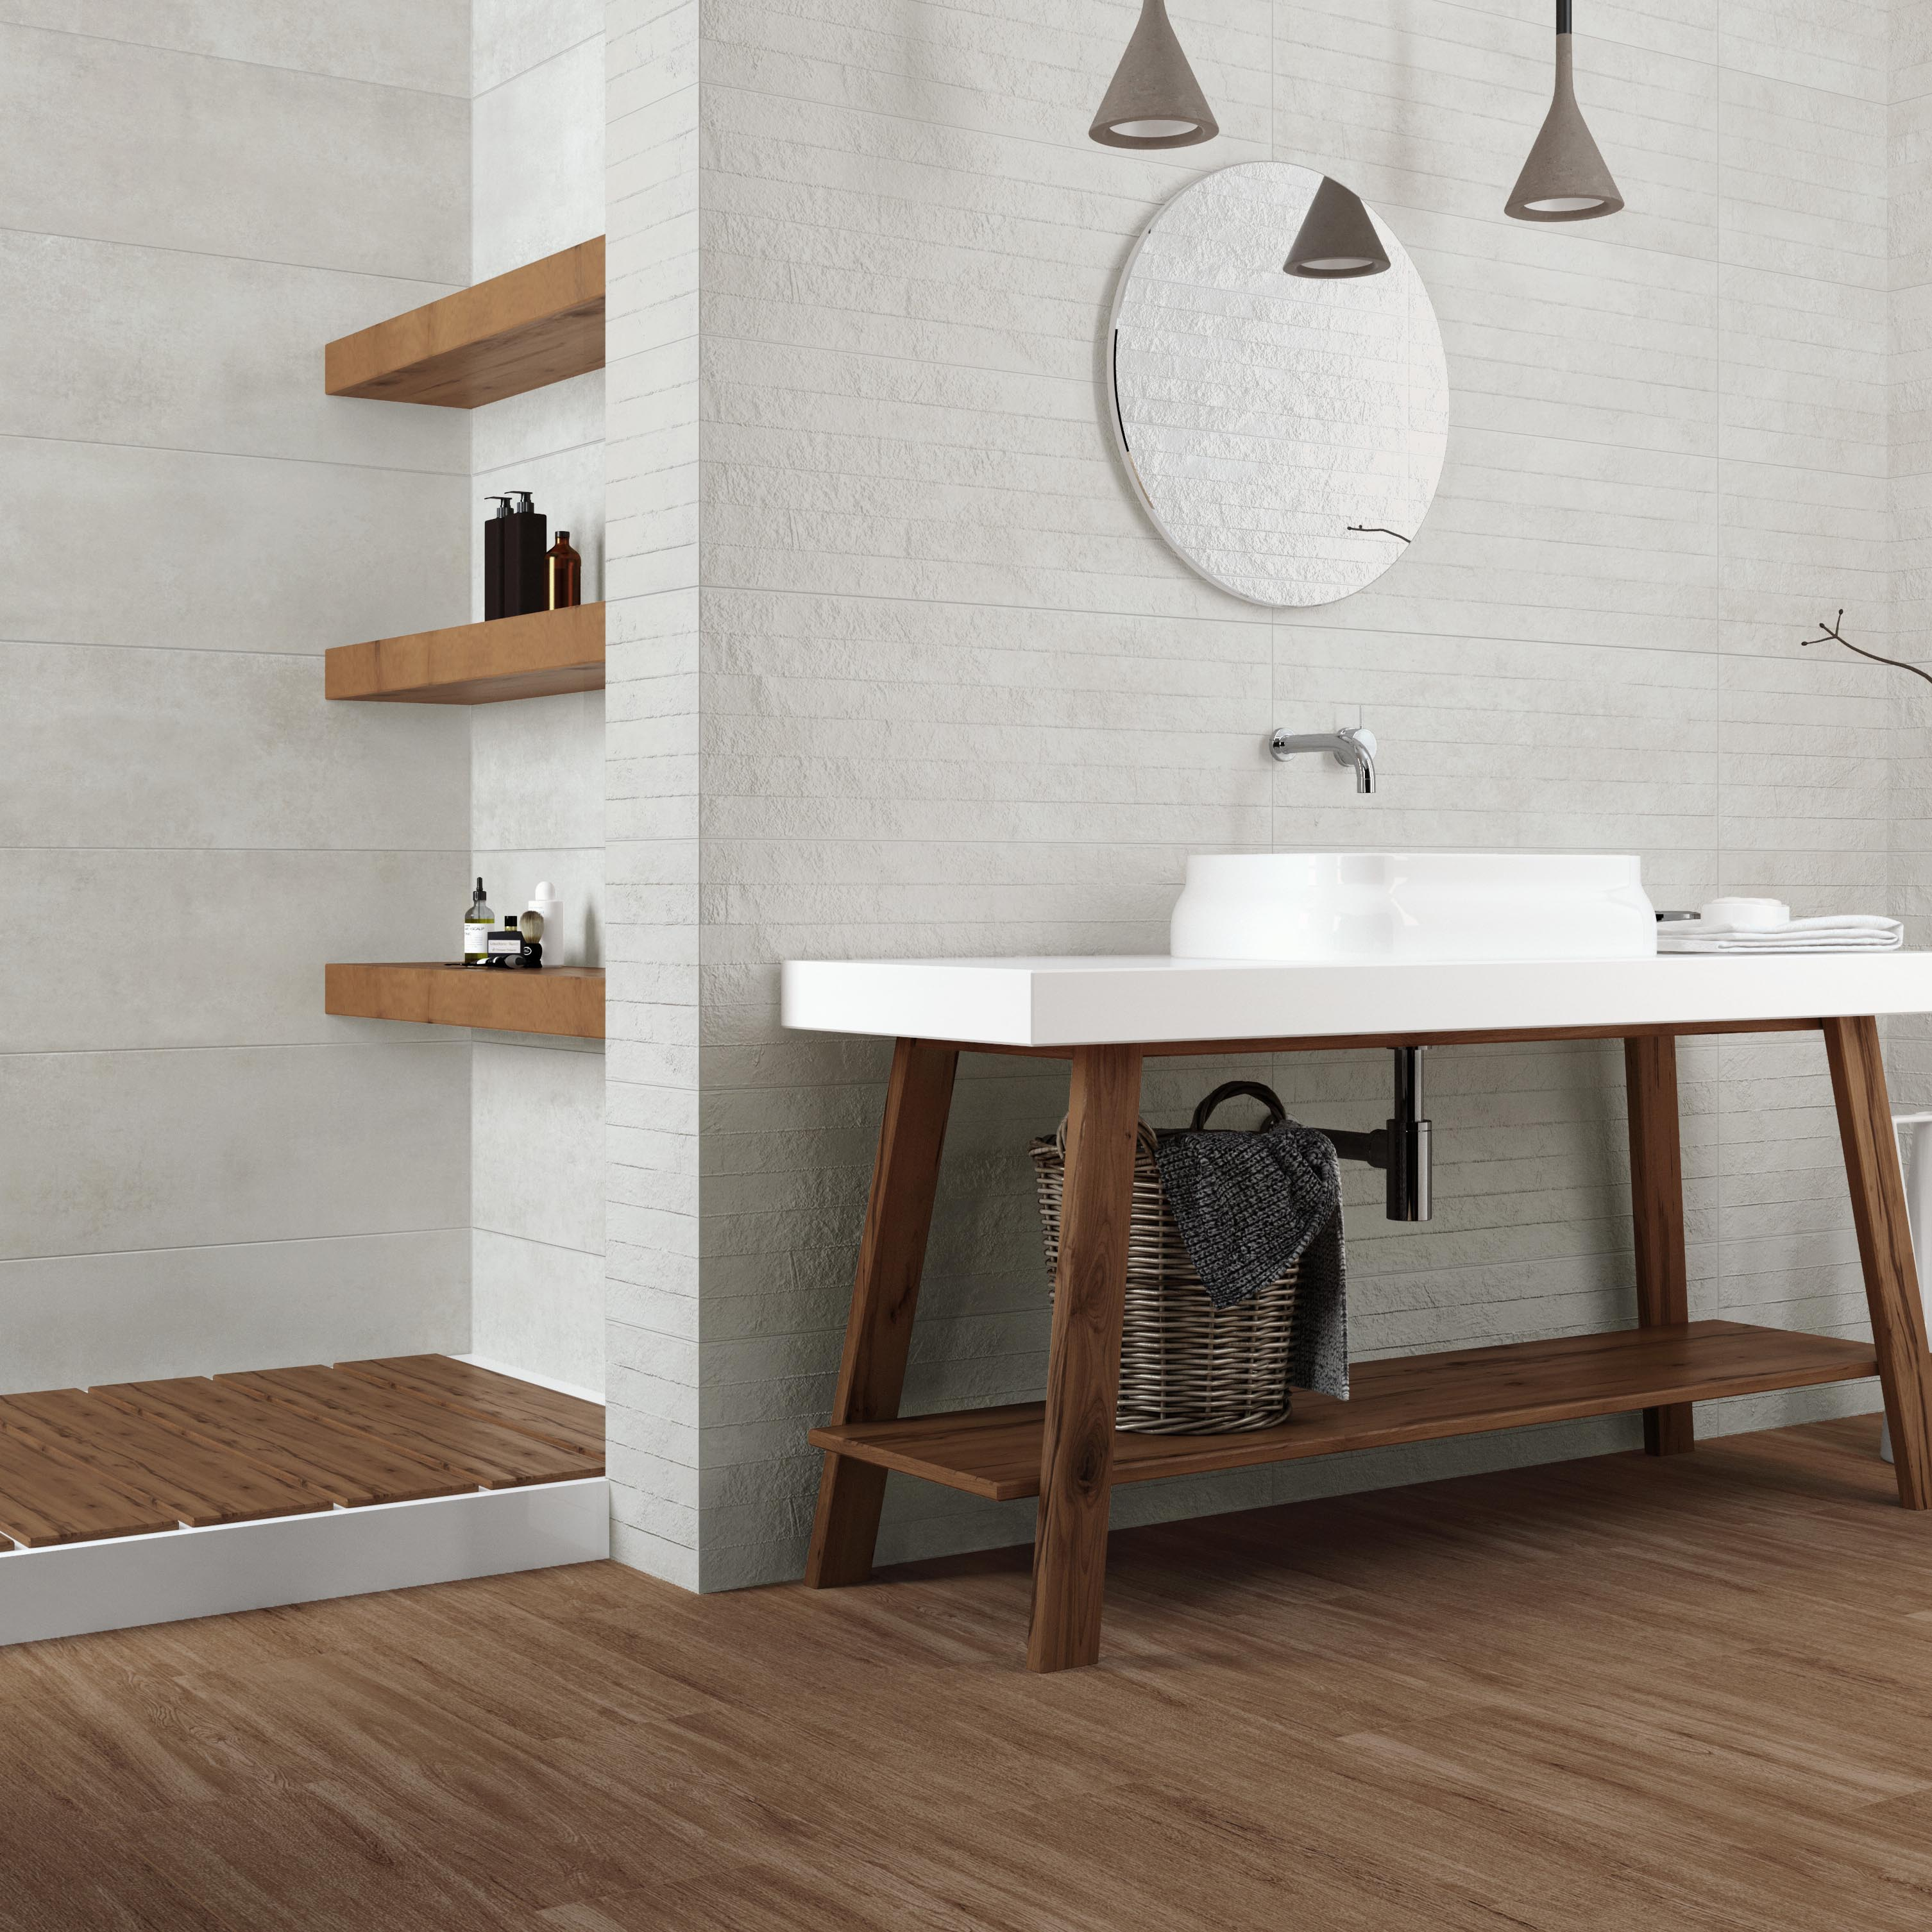 Viterbo Spanish Wall Tile Collection - Global Tiles